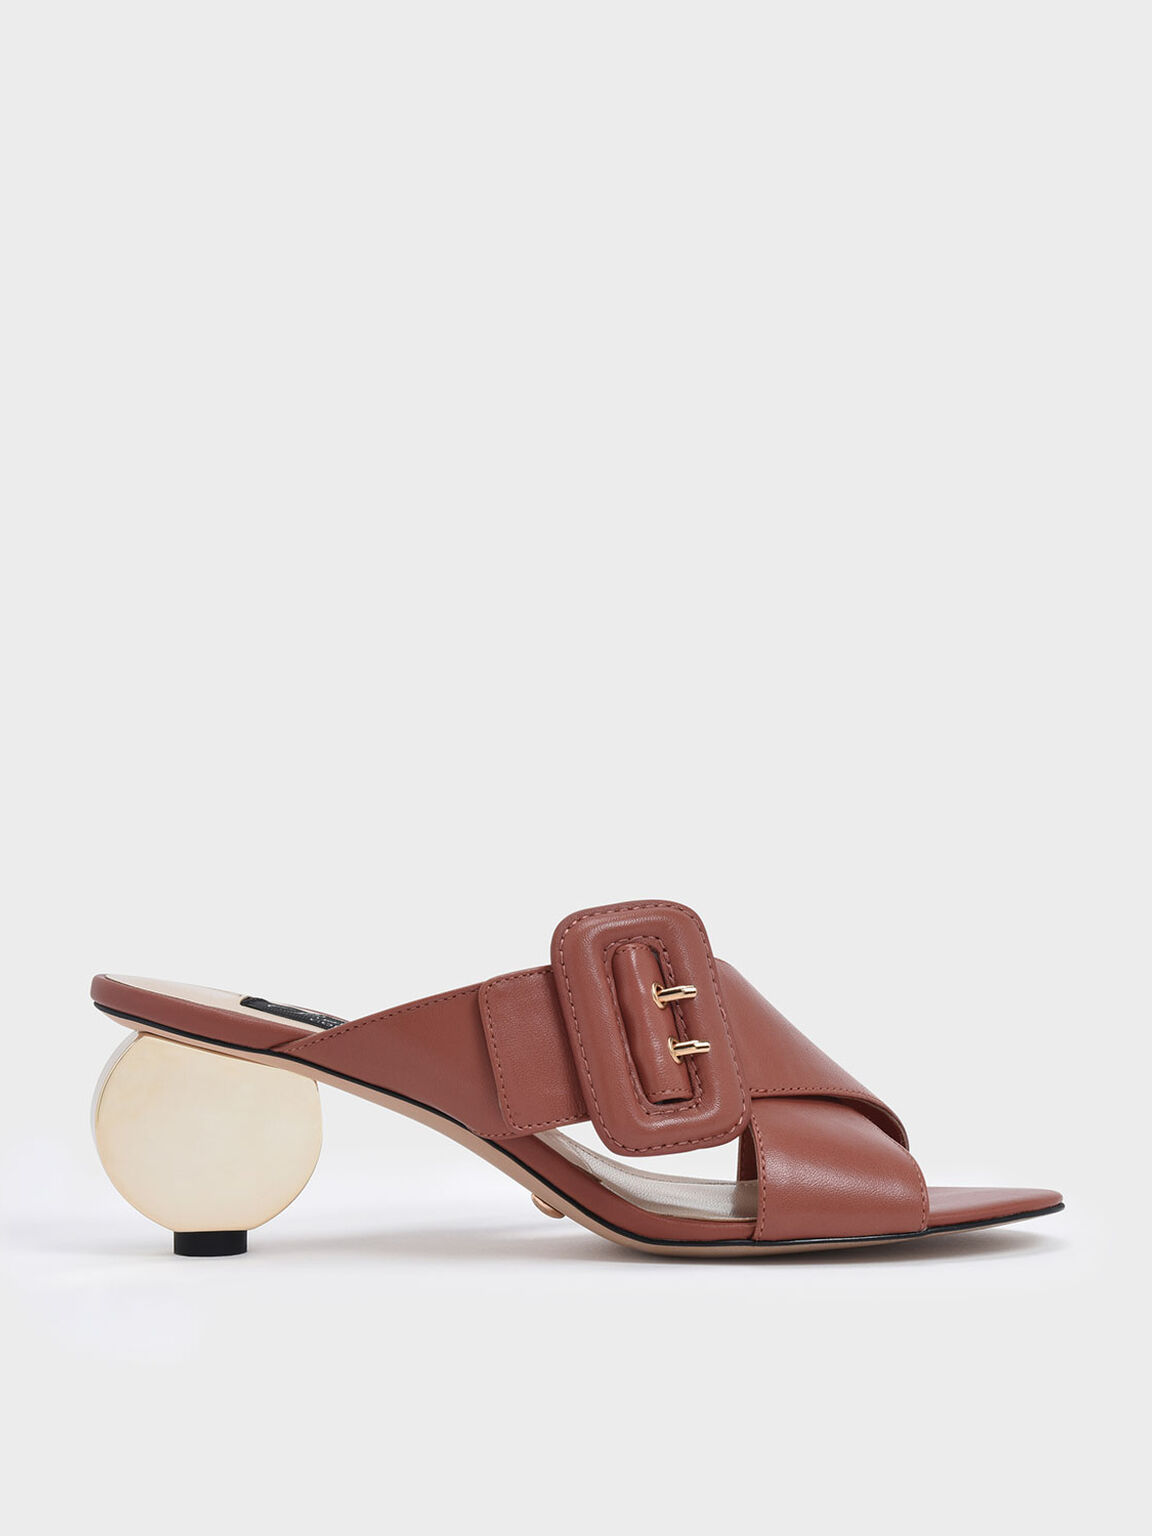 Sculptural Heel Leather Slide Sandals, Brick, hi-res